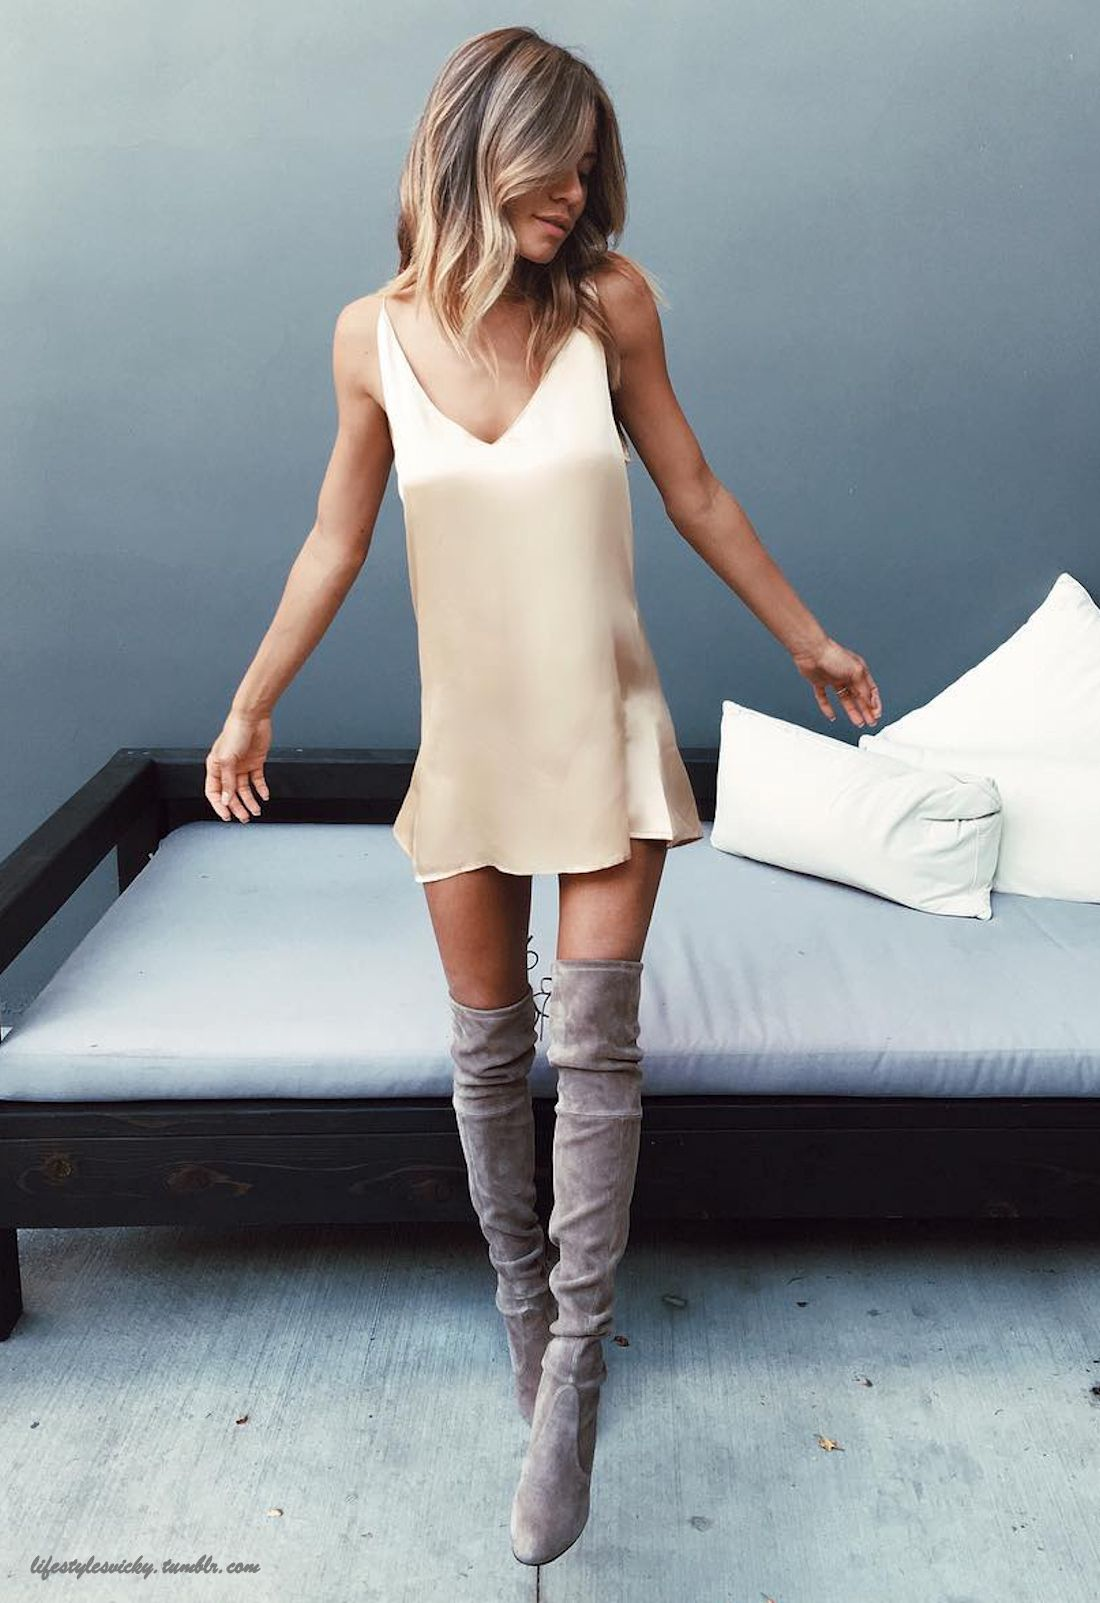 Slip dress + thigh high boots Follow for more posts daily! 23,000 ...